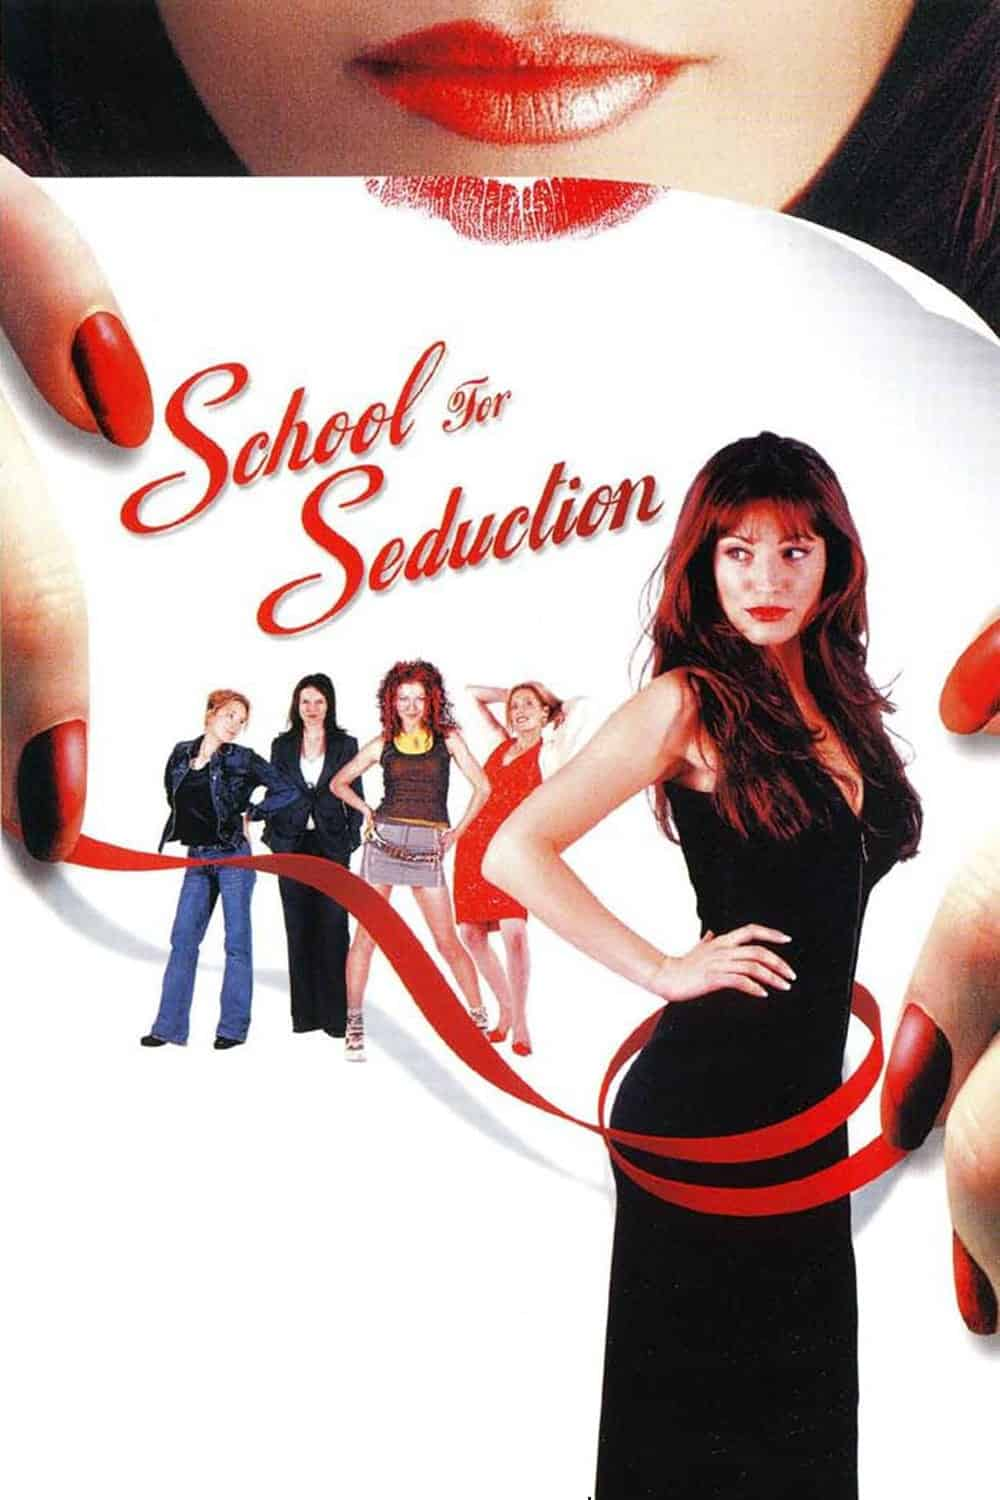 School for Seduction, 2004